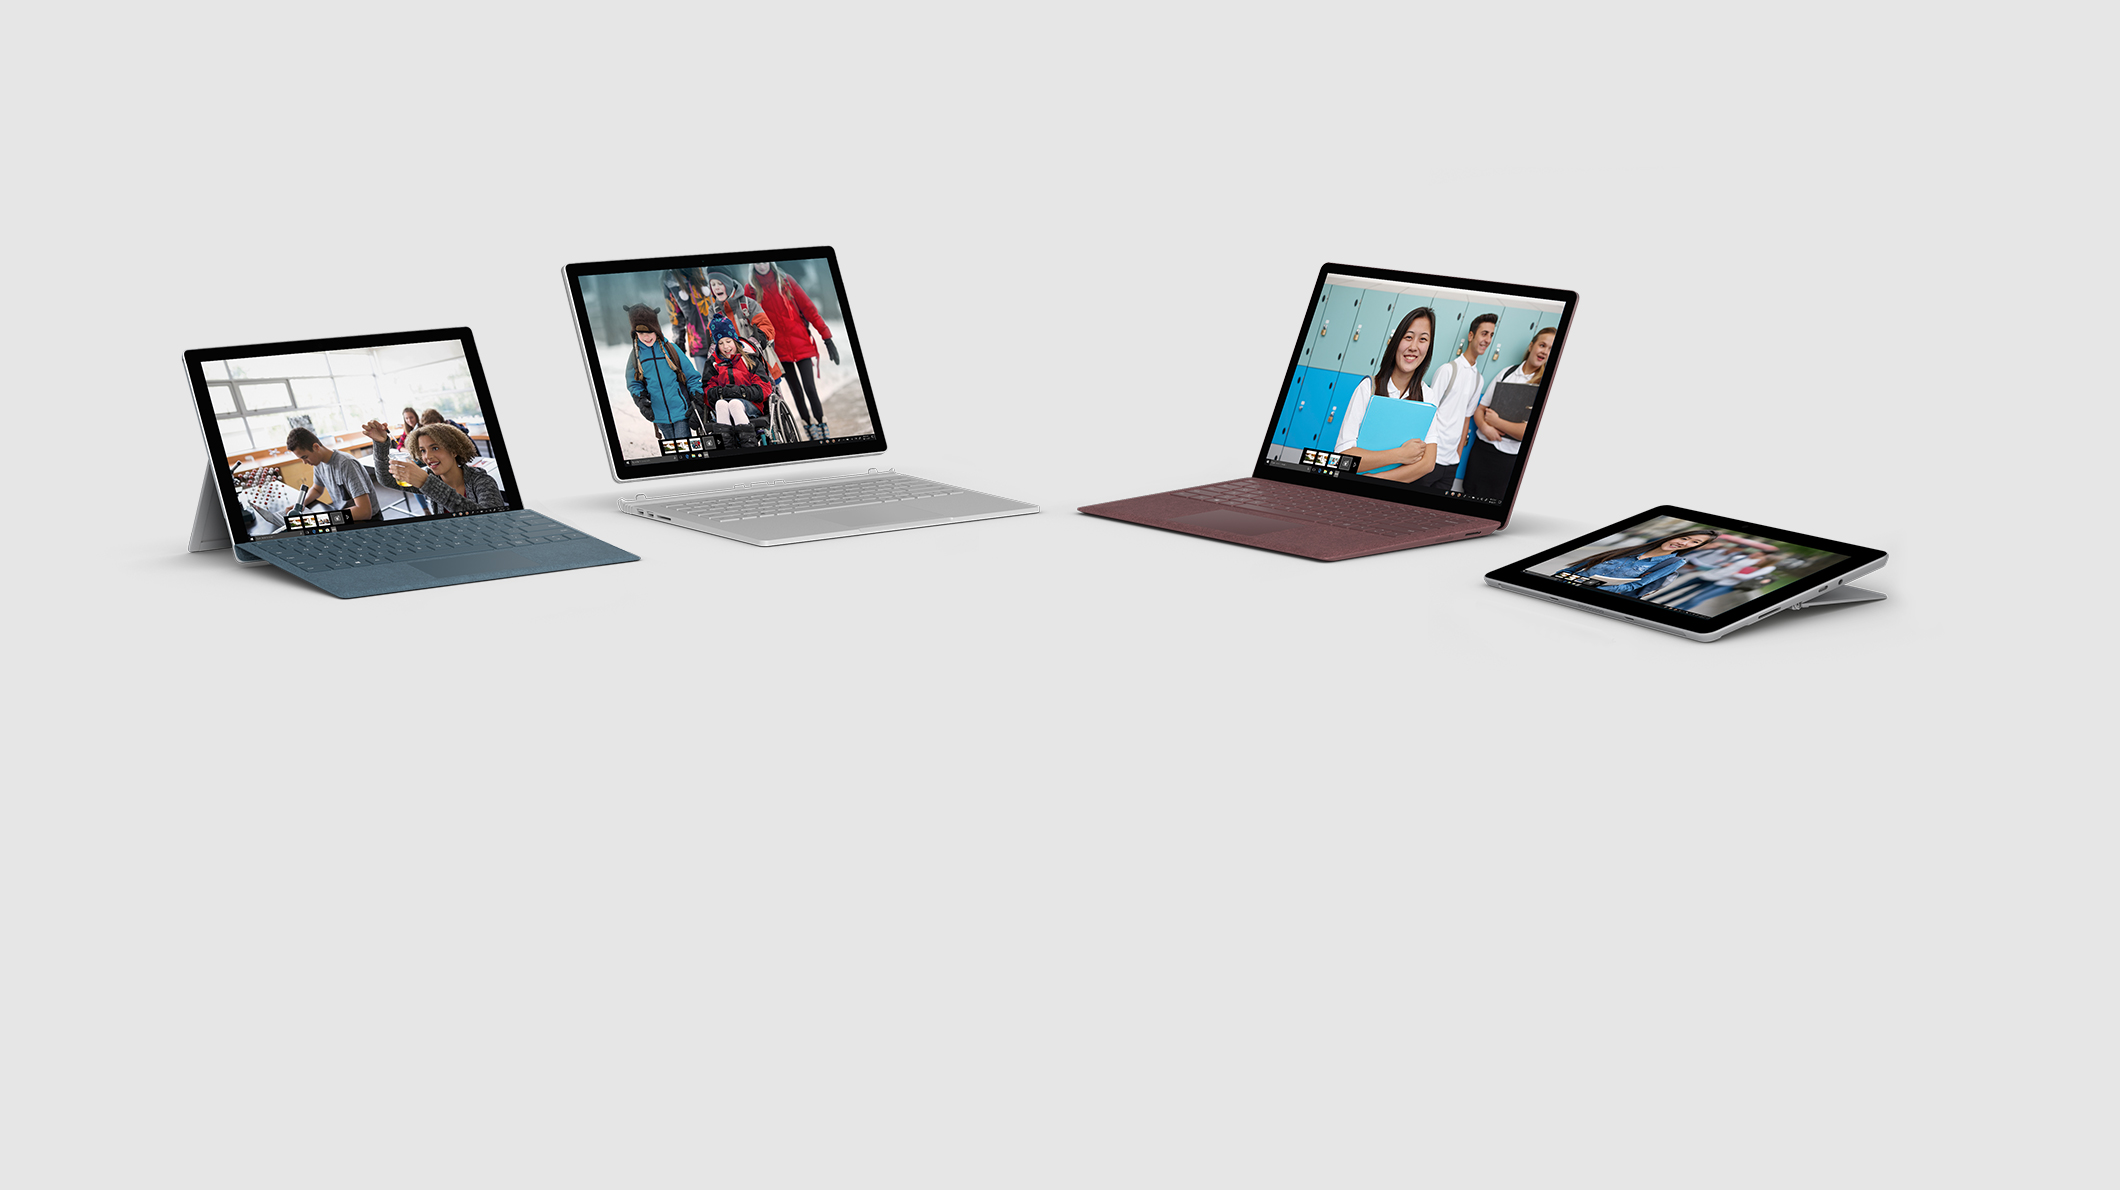 Surface Go, Surface Laptop 2, Surface Pro 6, Surface Book 2